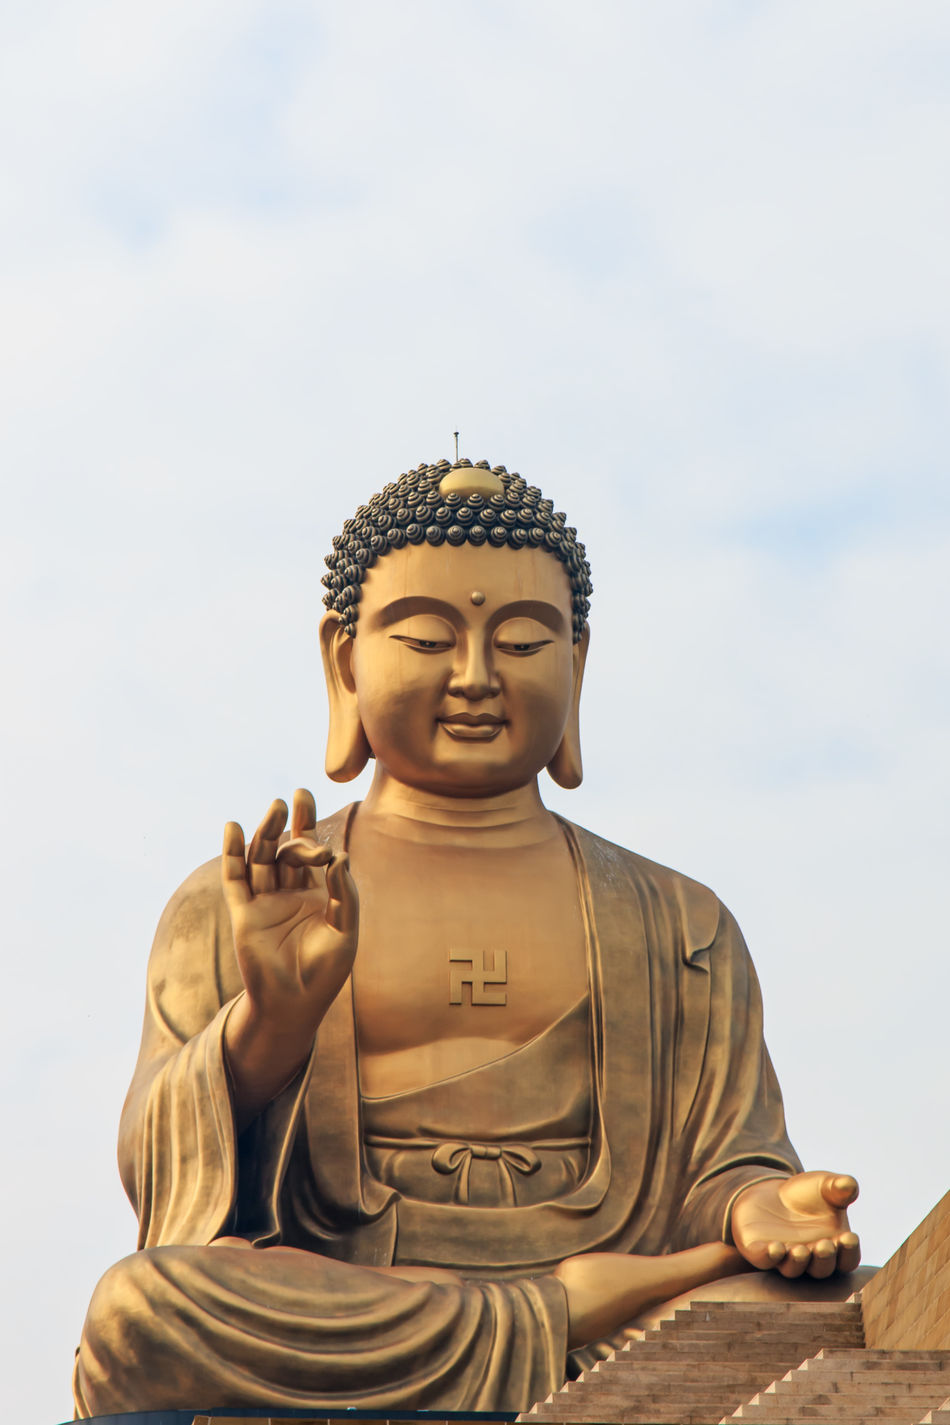 Giant Buddha Art ASIA Asian  Asian Culture Buddha Buddha Buddha Statue Cloud - Sky Creativity Fo Guang Shan Kaohsiung Low Angle View Outdoors Religion Sculpture Sky Spirituality Statue Stone Material Summer Taiwan Temple - Building Tourism Tradition Travel Destinations